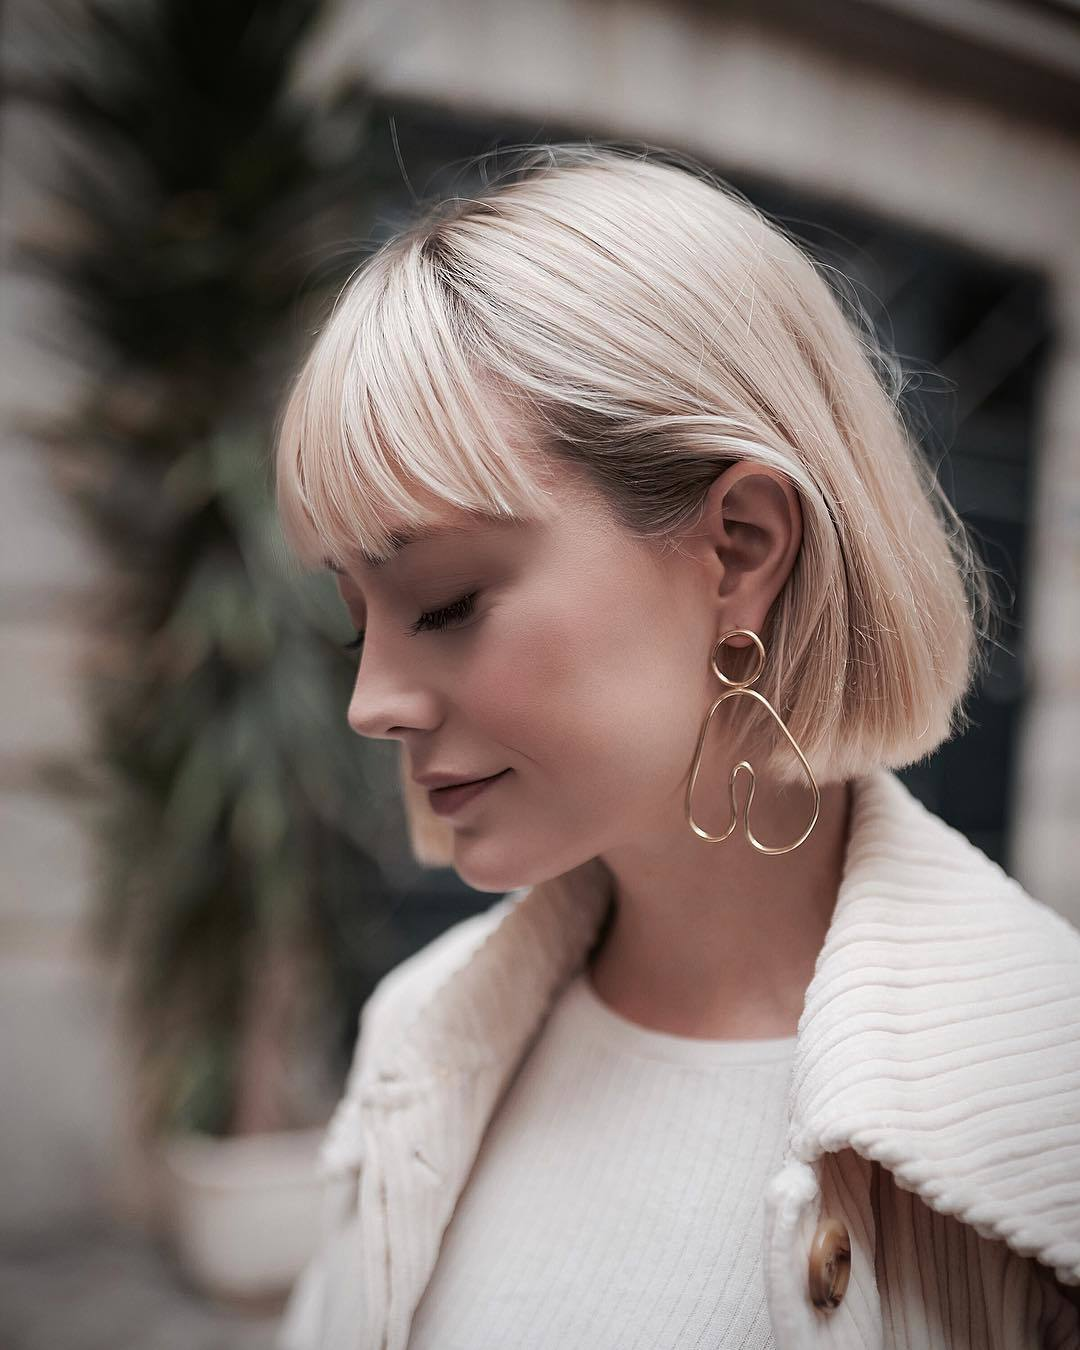 Woman with straight short blonde bob with feathery bangs